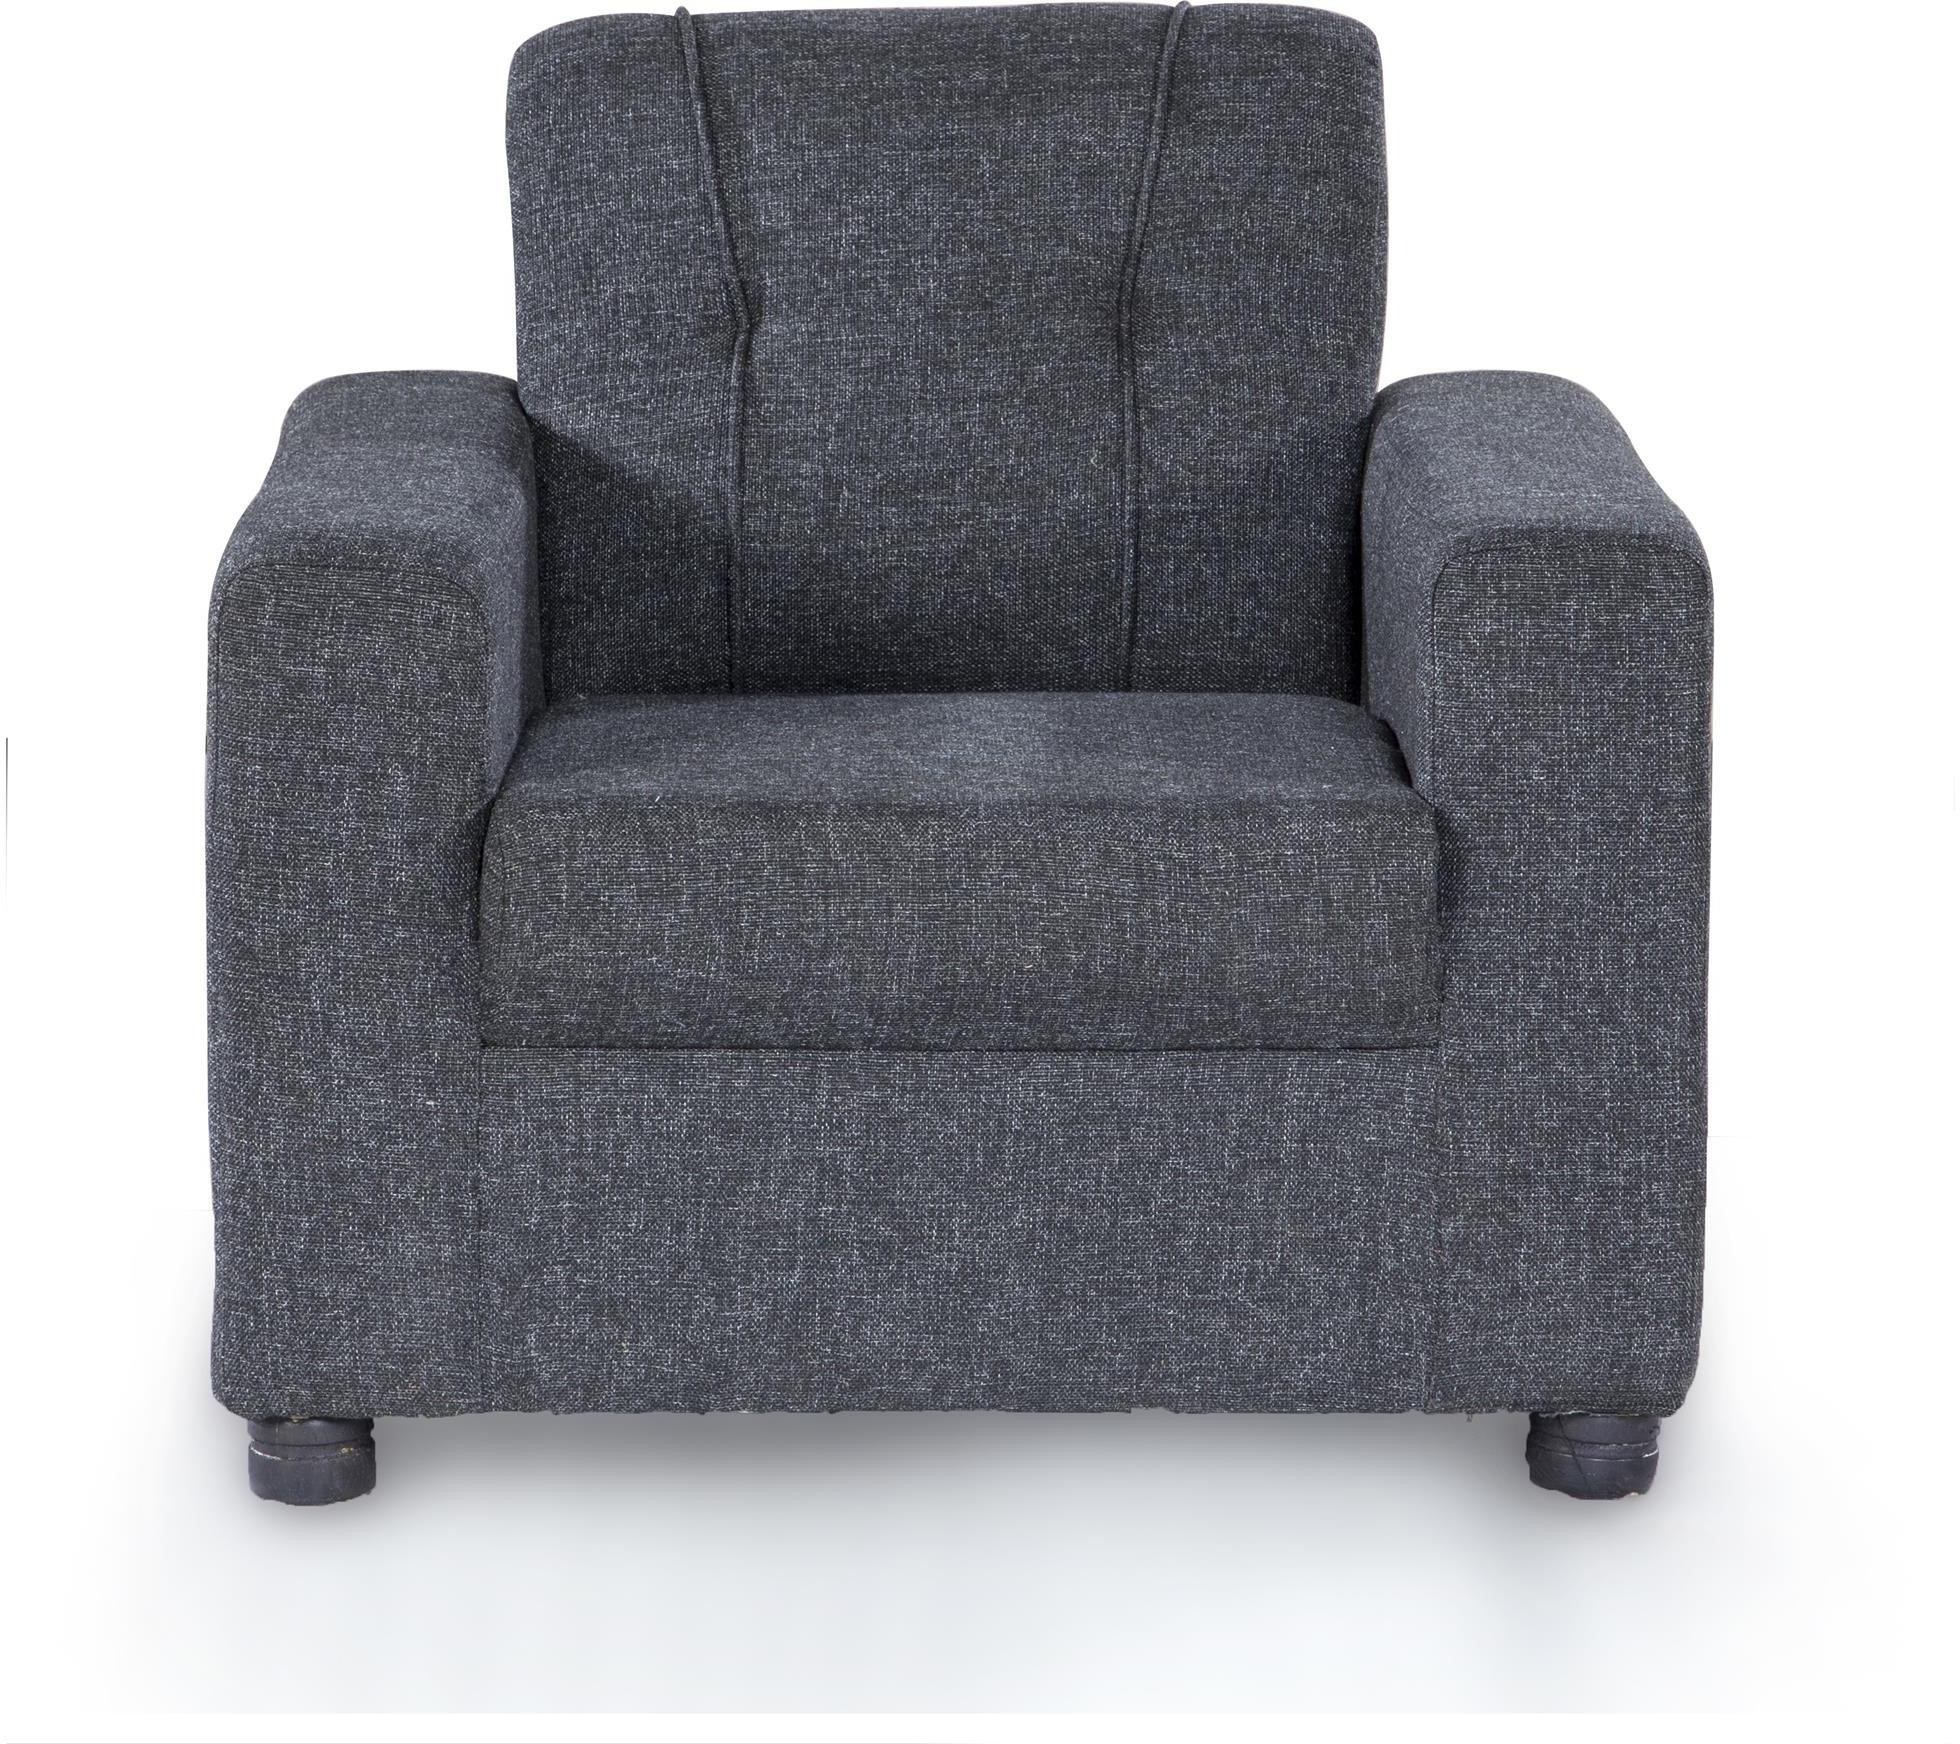 View Furnicity Fabric 1 Seater Standard(Finish Color - Grey) Furniture (Furnicity)